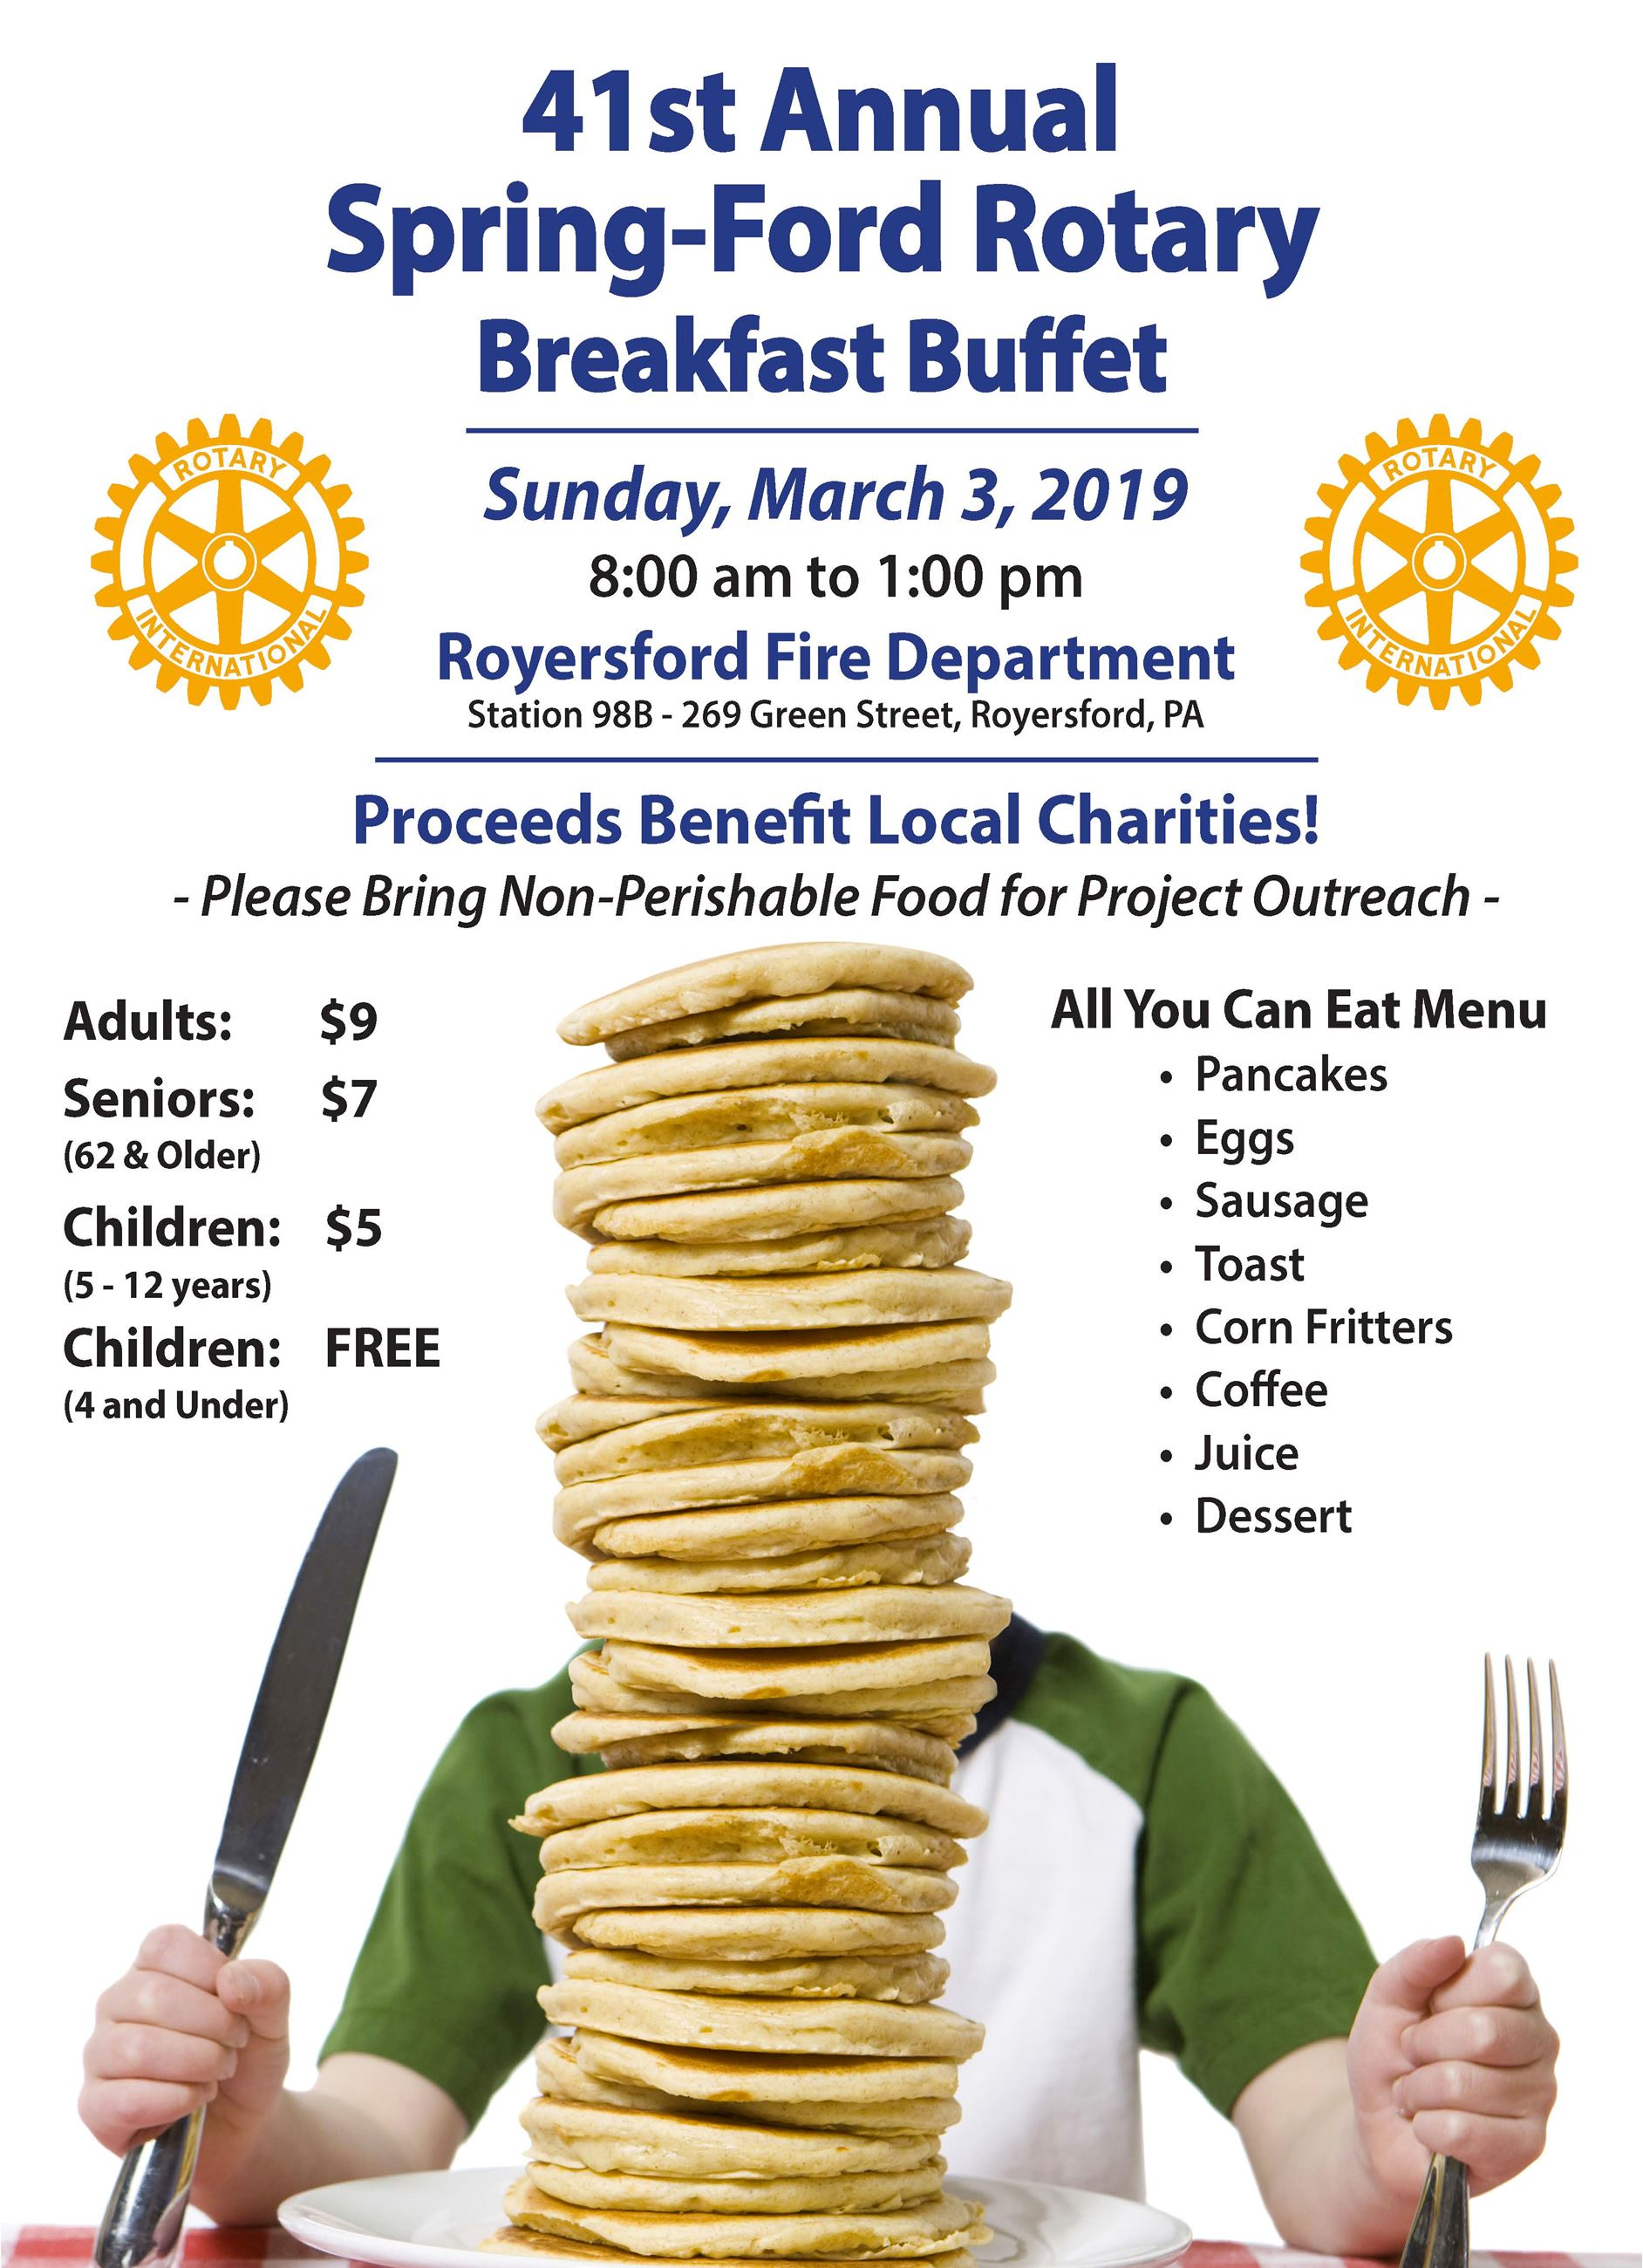 Spring-Ford Rotary Breakfast Buffet Flyer - March 3, 2019